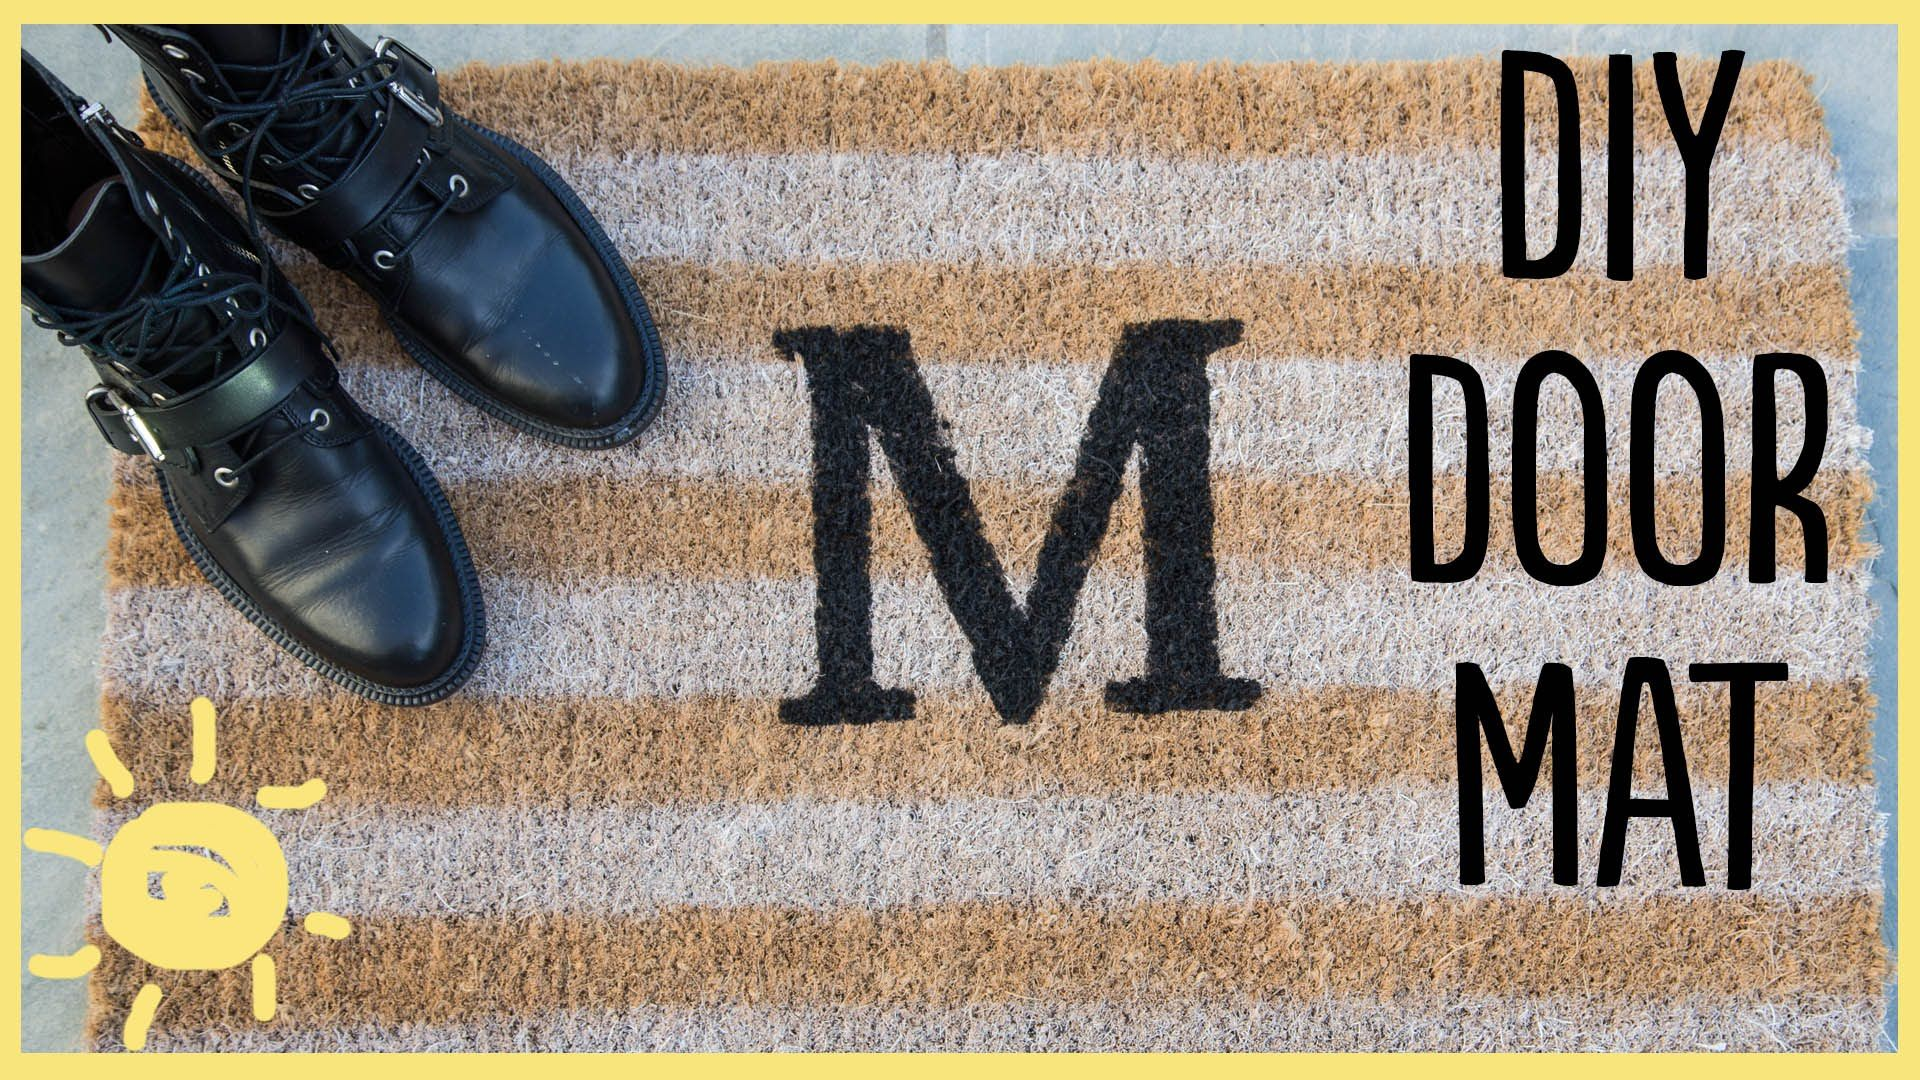 Make your own beautiful personalized door mat...it's easy and inexpensive! Don't forget to sub for new videos every M-W-F http://bit.ly/sub2moms Supplies: Do...